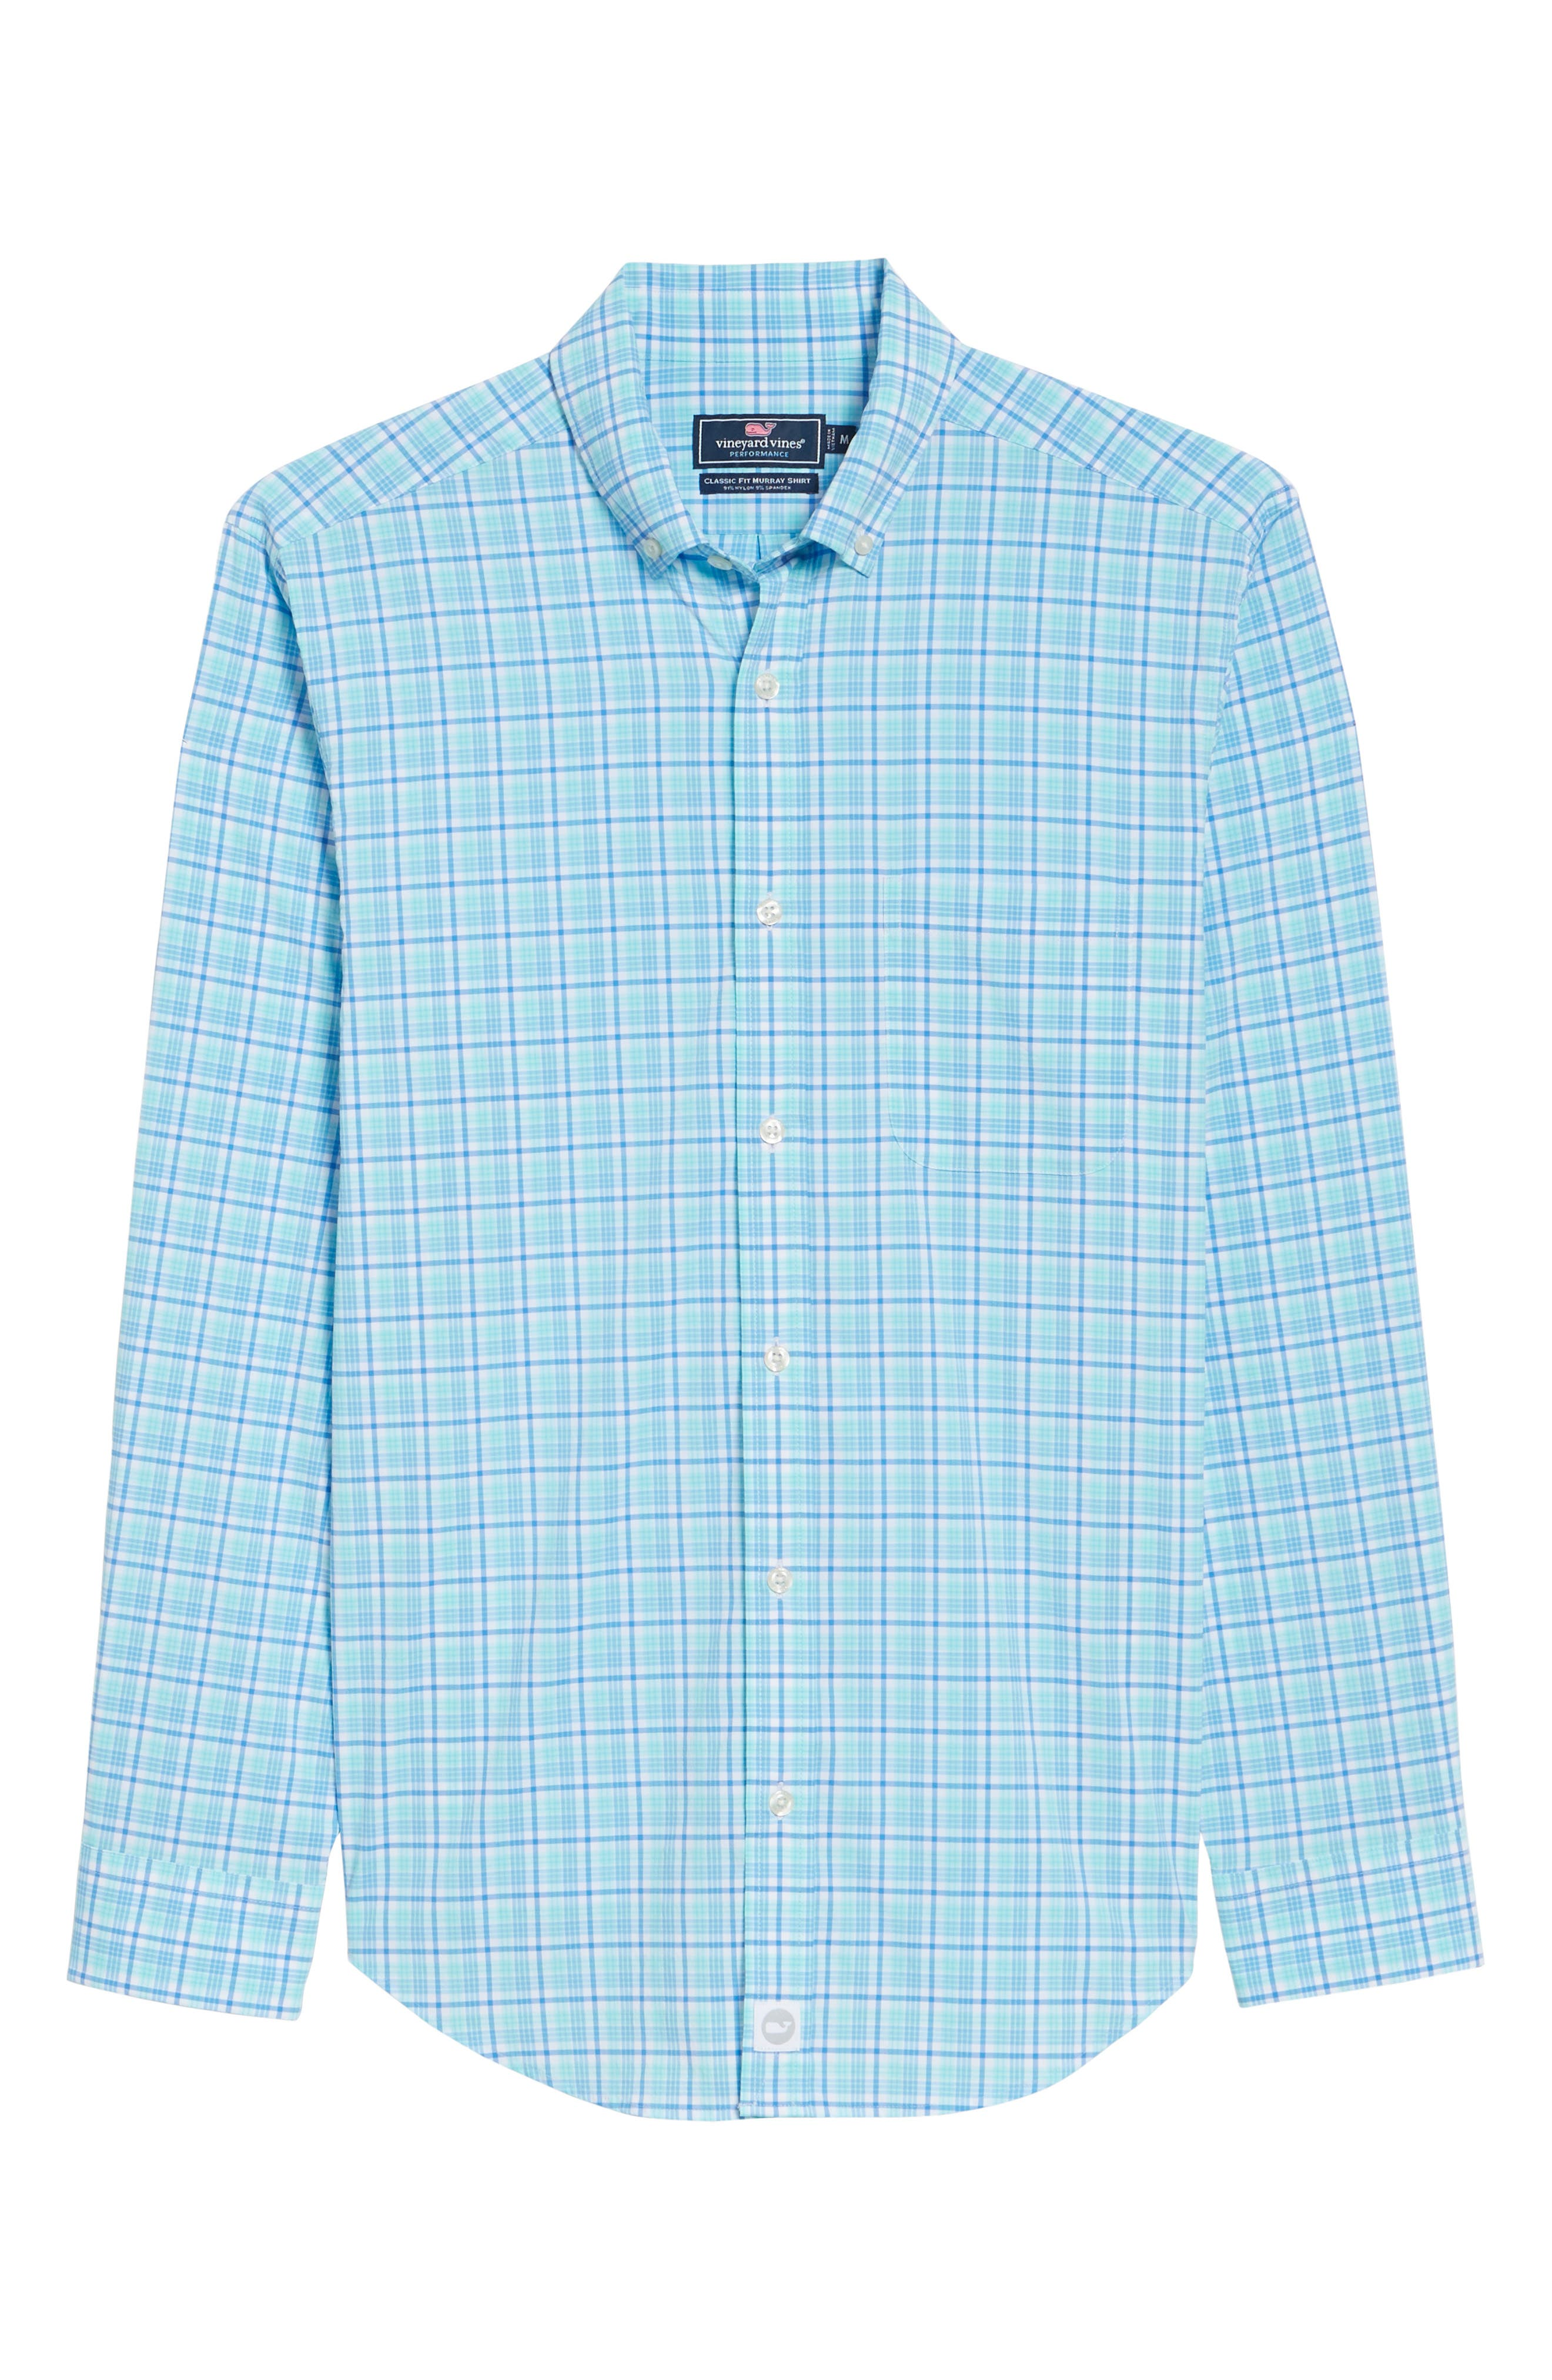 Tipsy Bar Classic Fit Stretch Plaid Sport Shirt,                             Alternate thumbnail 6, color,